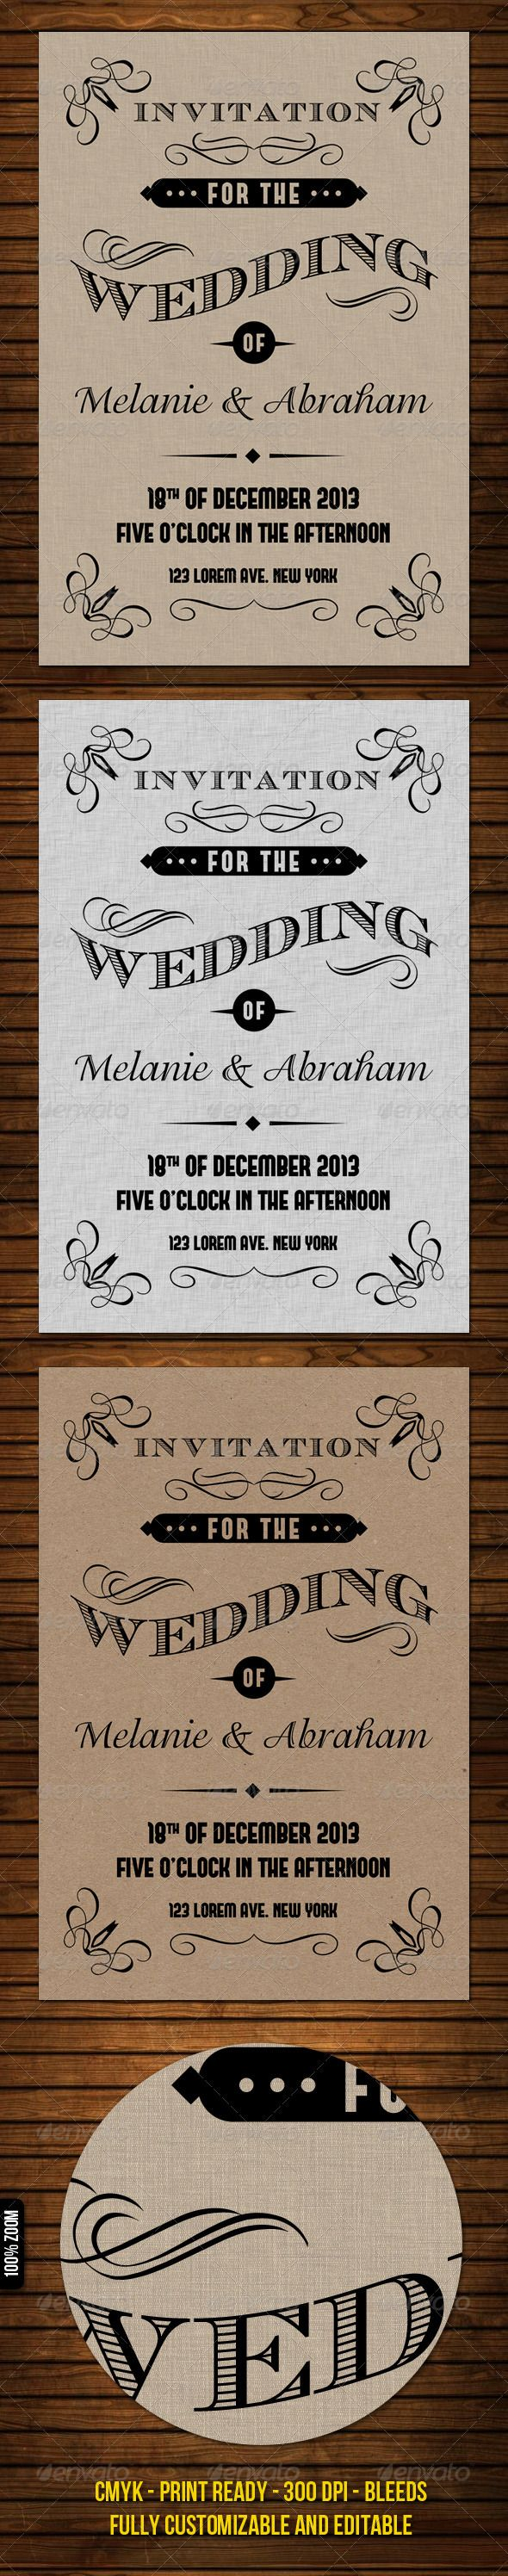 free wedding invitation psd%0A Old Vintage Wedding Invitation  u     Photoshop PSD  carton  couple  u     Available  here     https